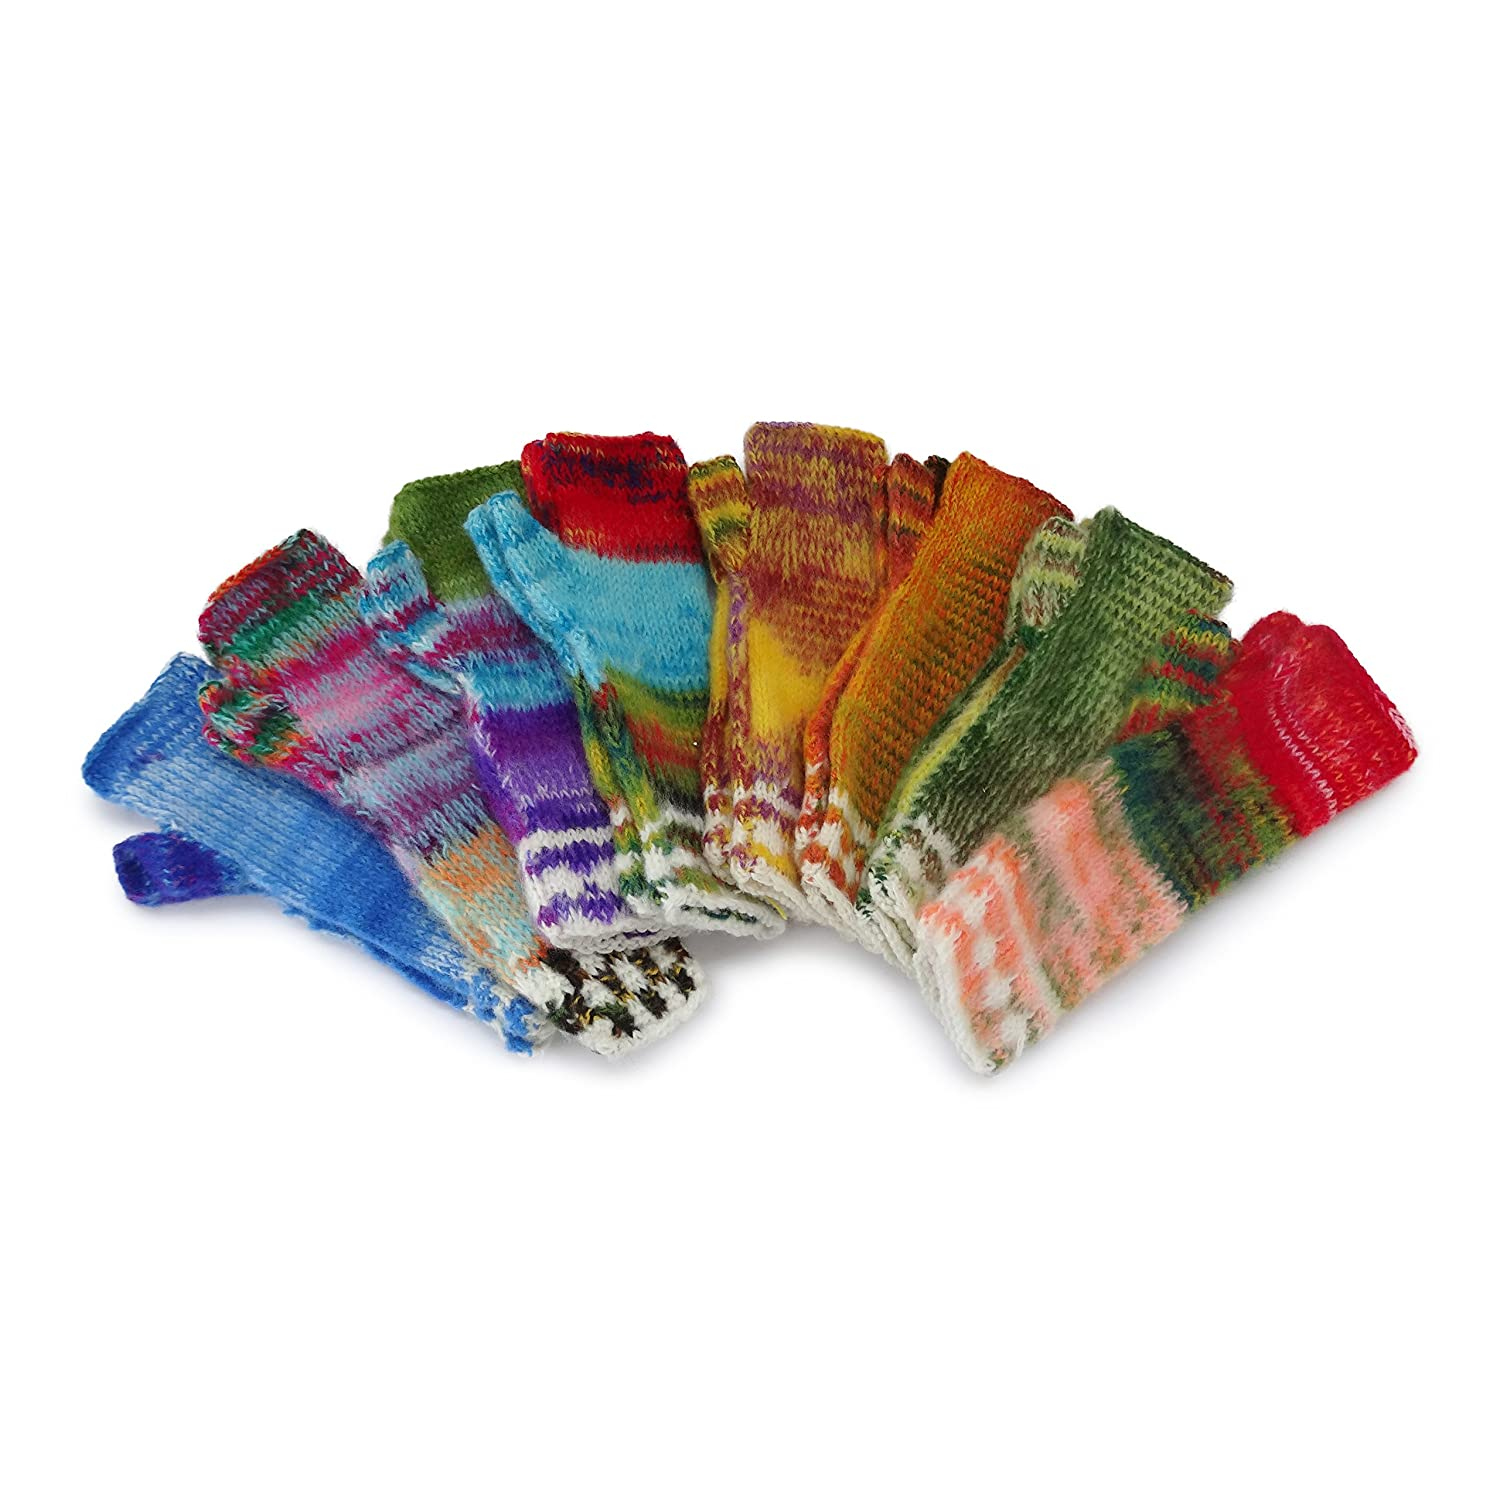 Colourful Wool Arm Warmers, Fair trade and hand-knitted Bolivia-One size only 30cm long